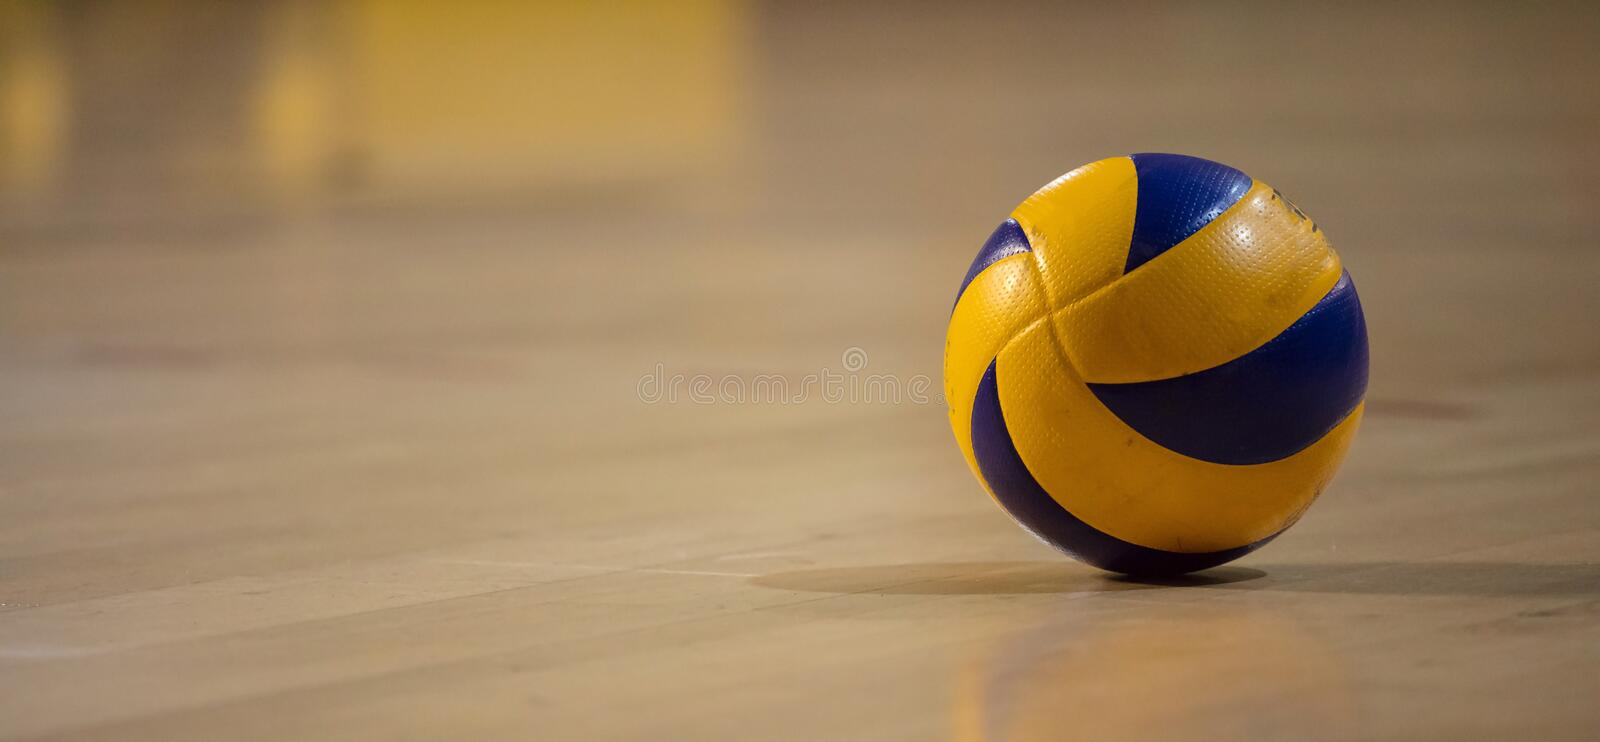 Volleyball ball on blurred wooden parquet background. Banner, space for text, close up view with details. stock photography